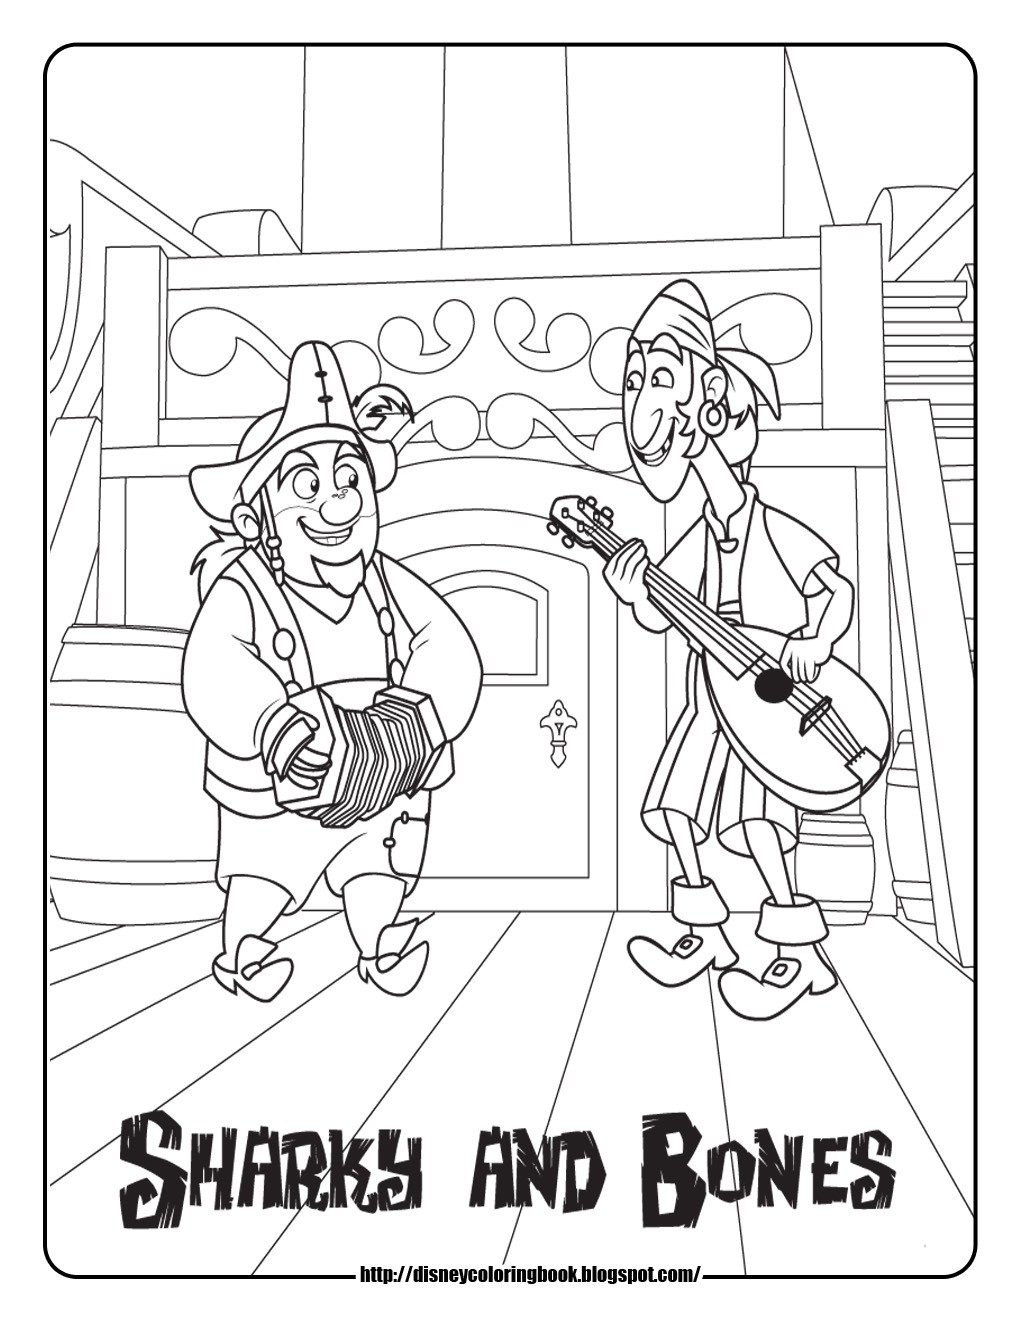 Jake and the neverland pirates coloring pages online for Jake and the pirates coloring pages